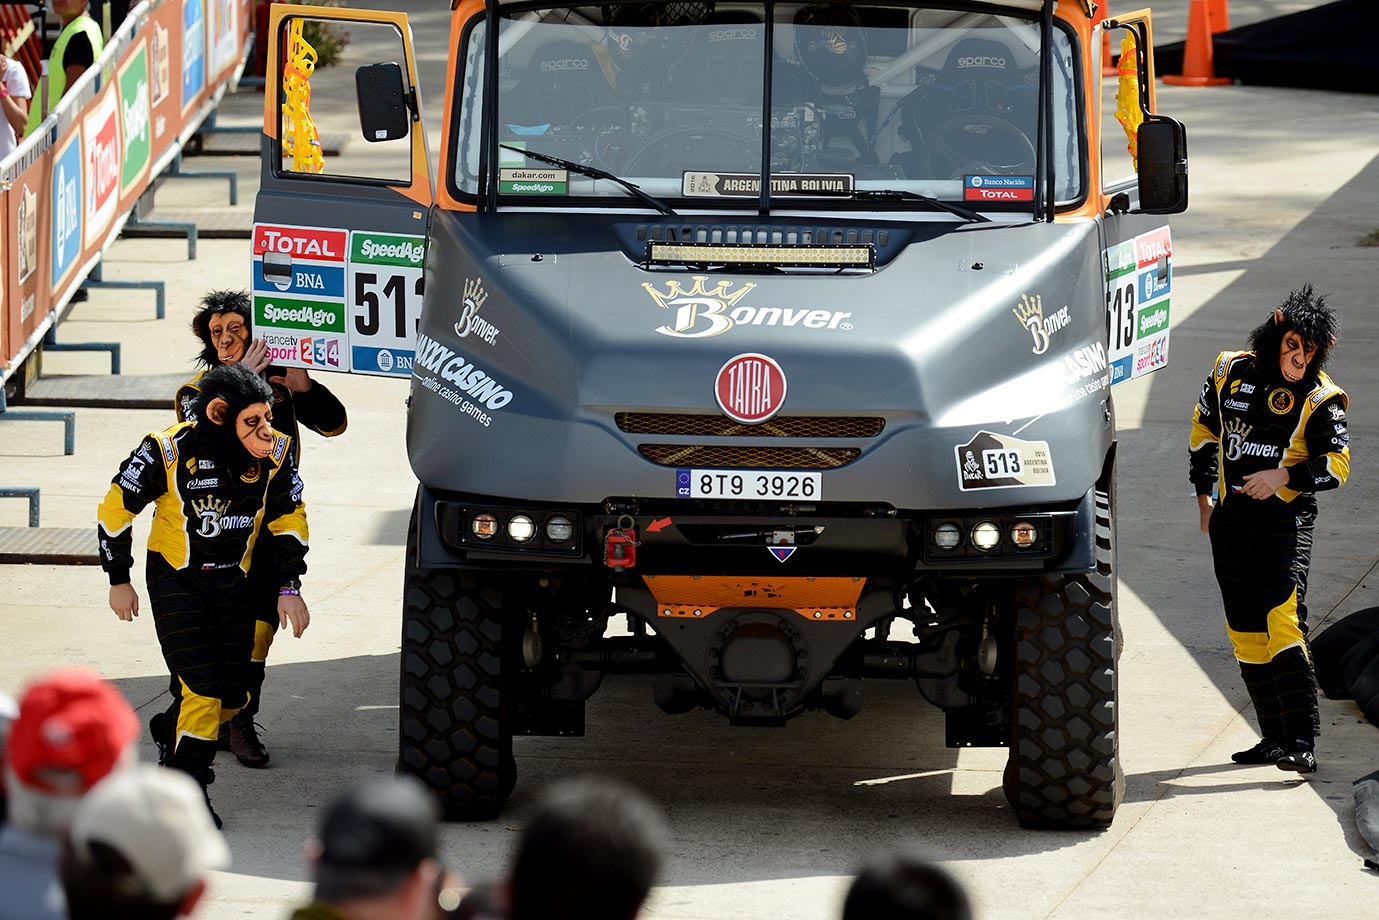 Competitors from the Bonver Dakar project team arrive at the podium wearing monkey masks during the symbolic start of the 2016 Dakar Rally.